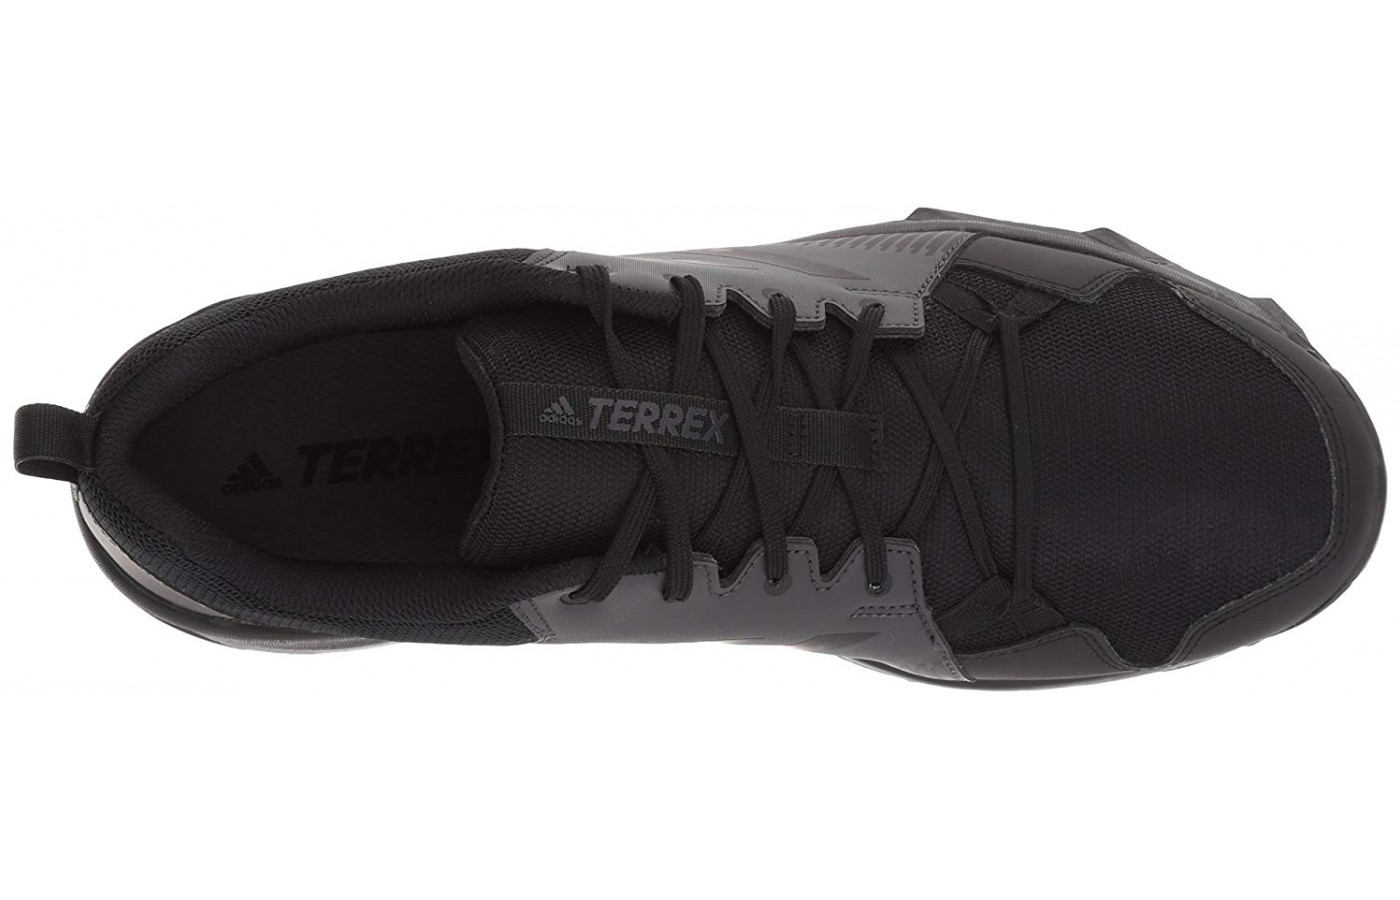 The Tracerocker makes for a snug, comfortable fit.